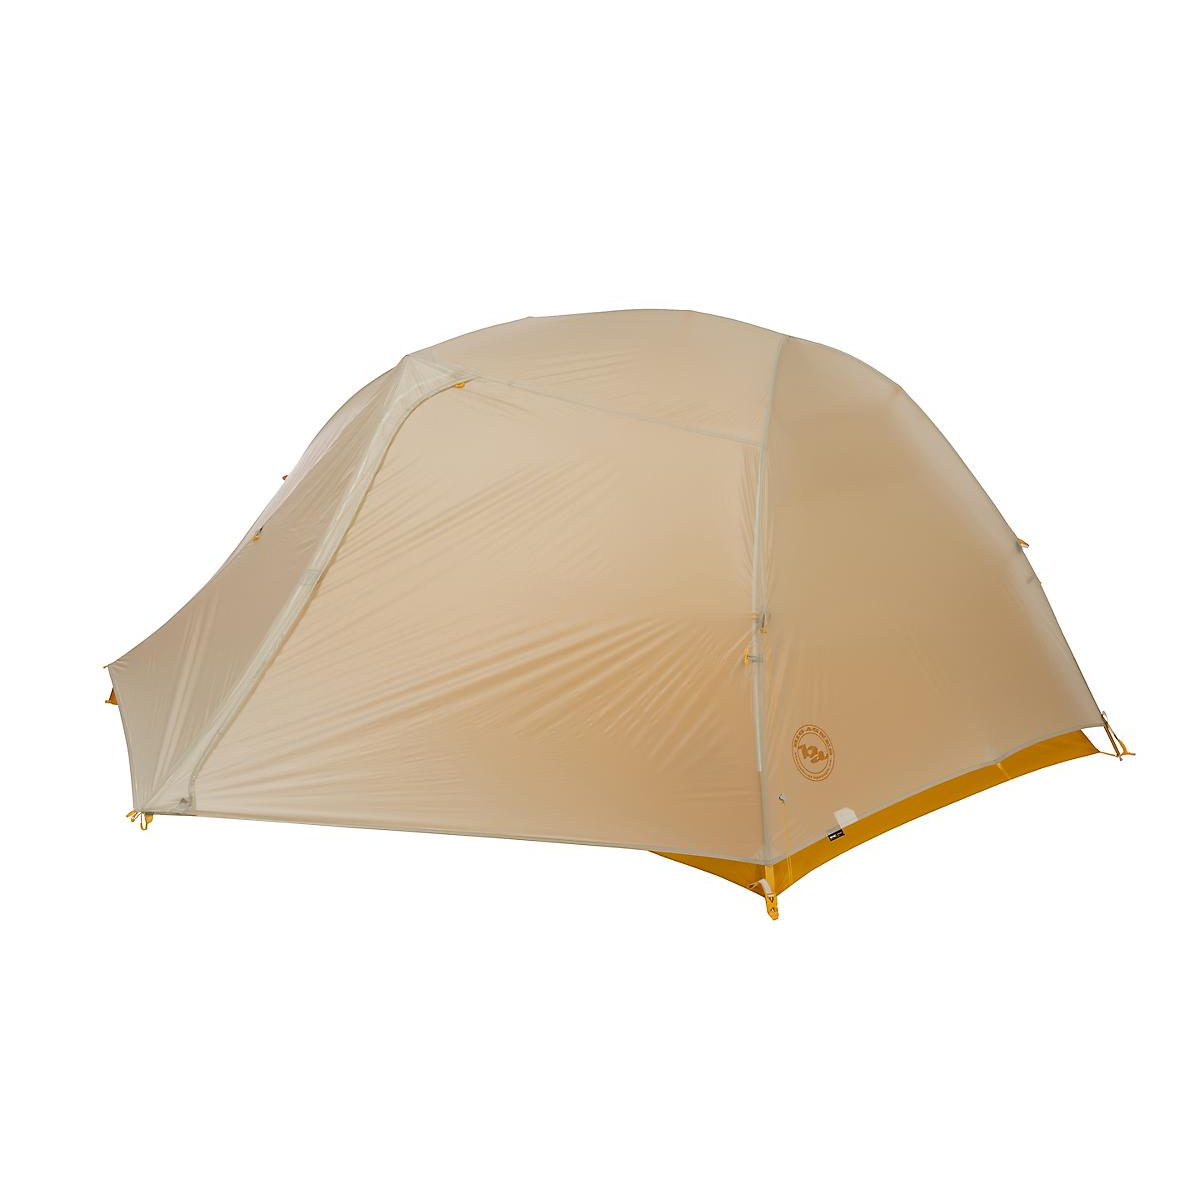 Big Agnes Tiger Wall UL 2